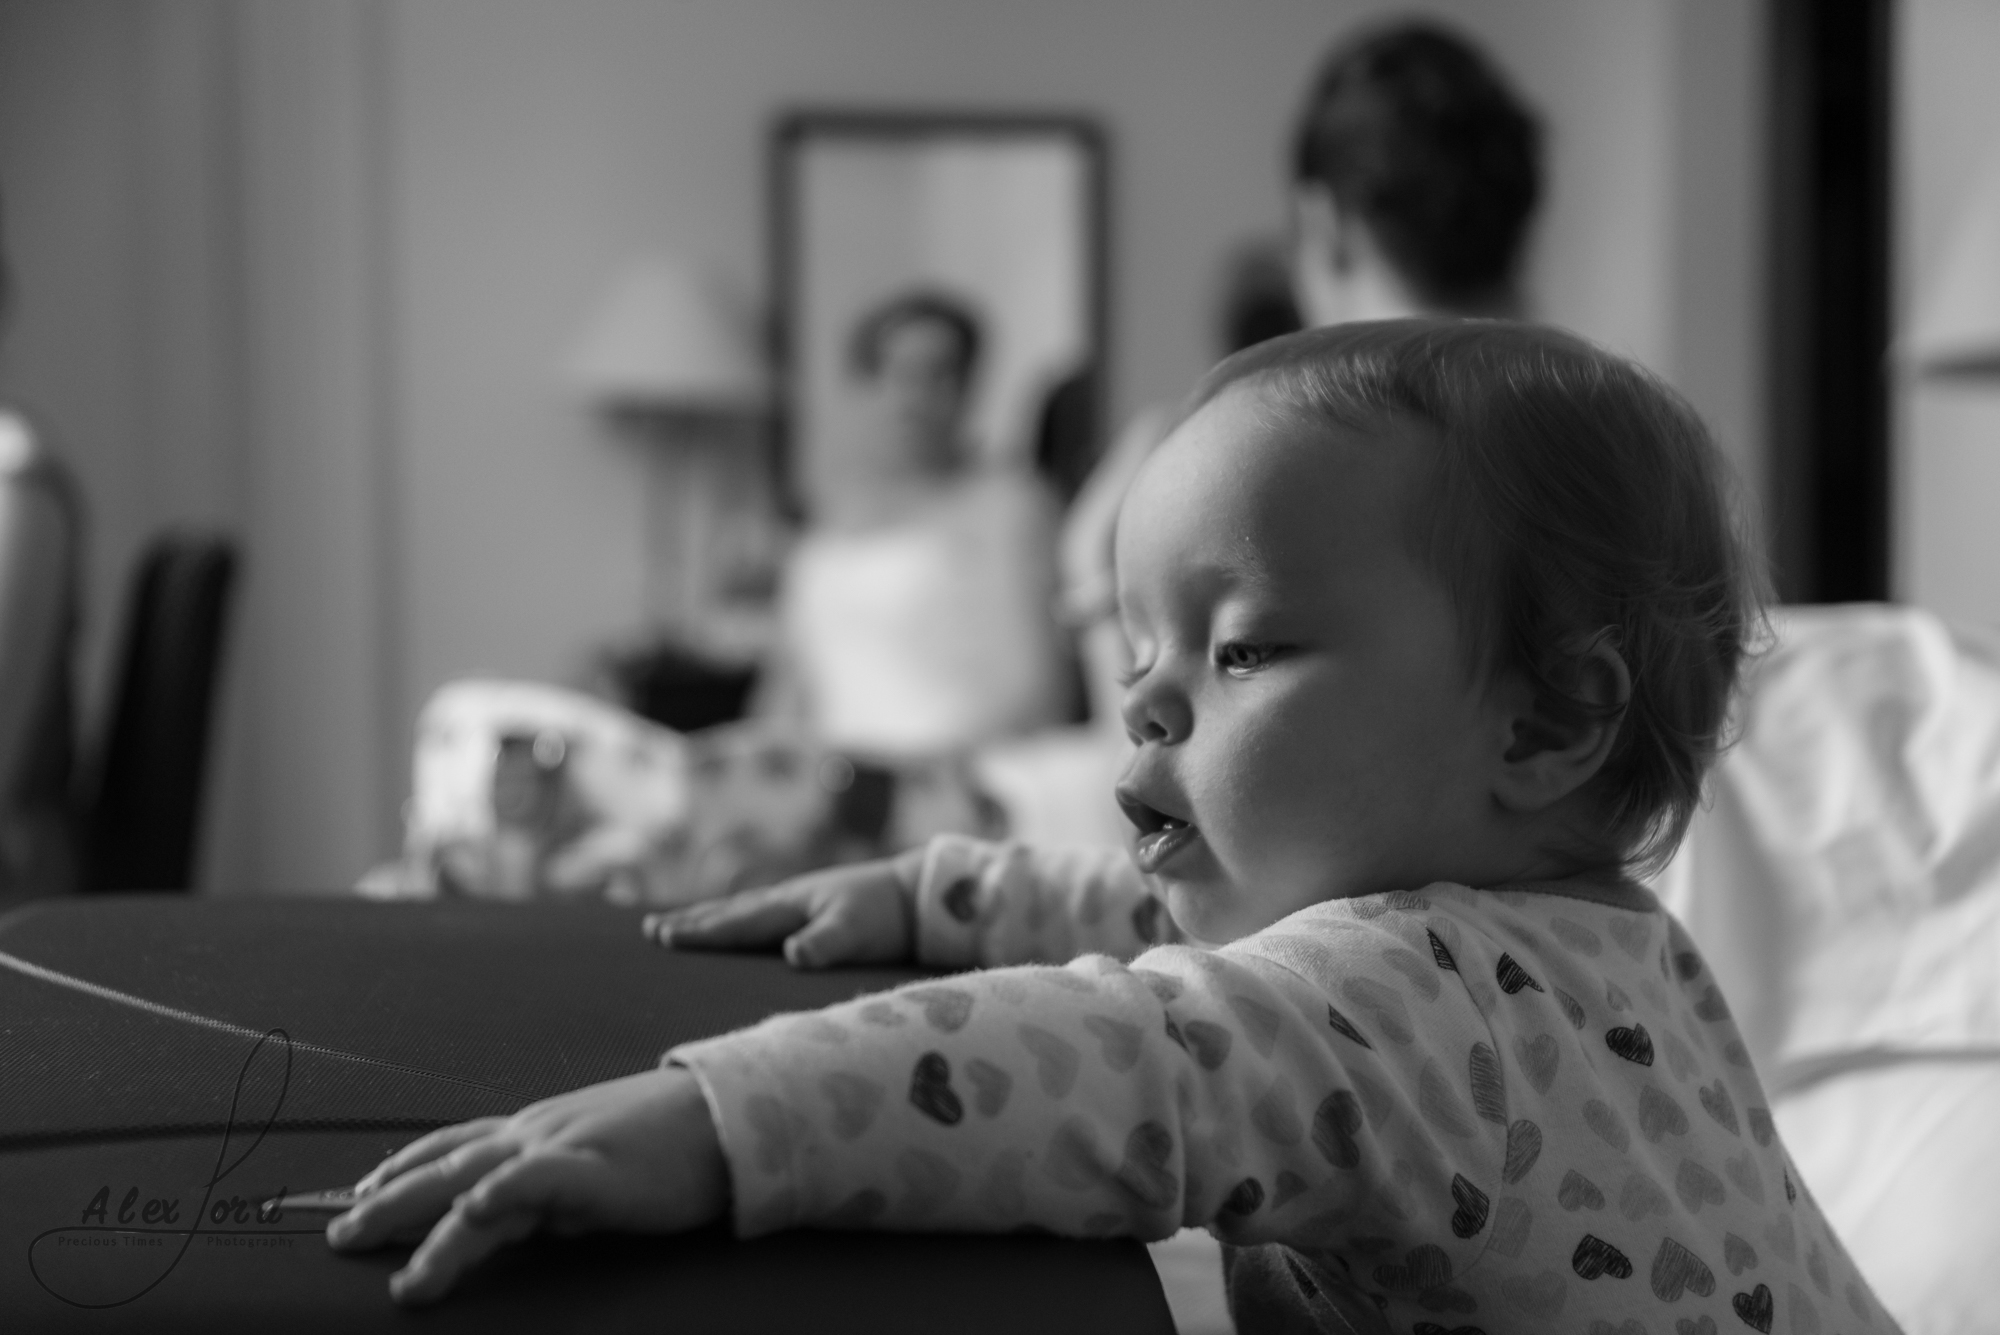 a young baby plays around while the bridesmaids getting ready in the background